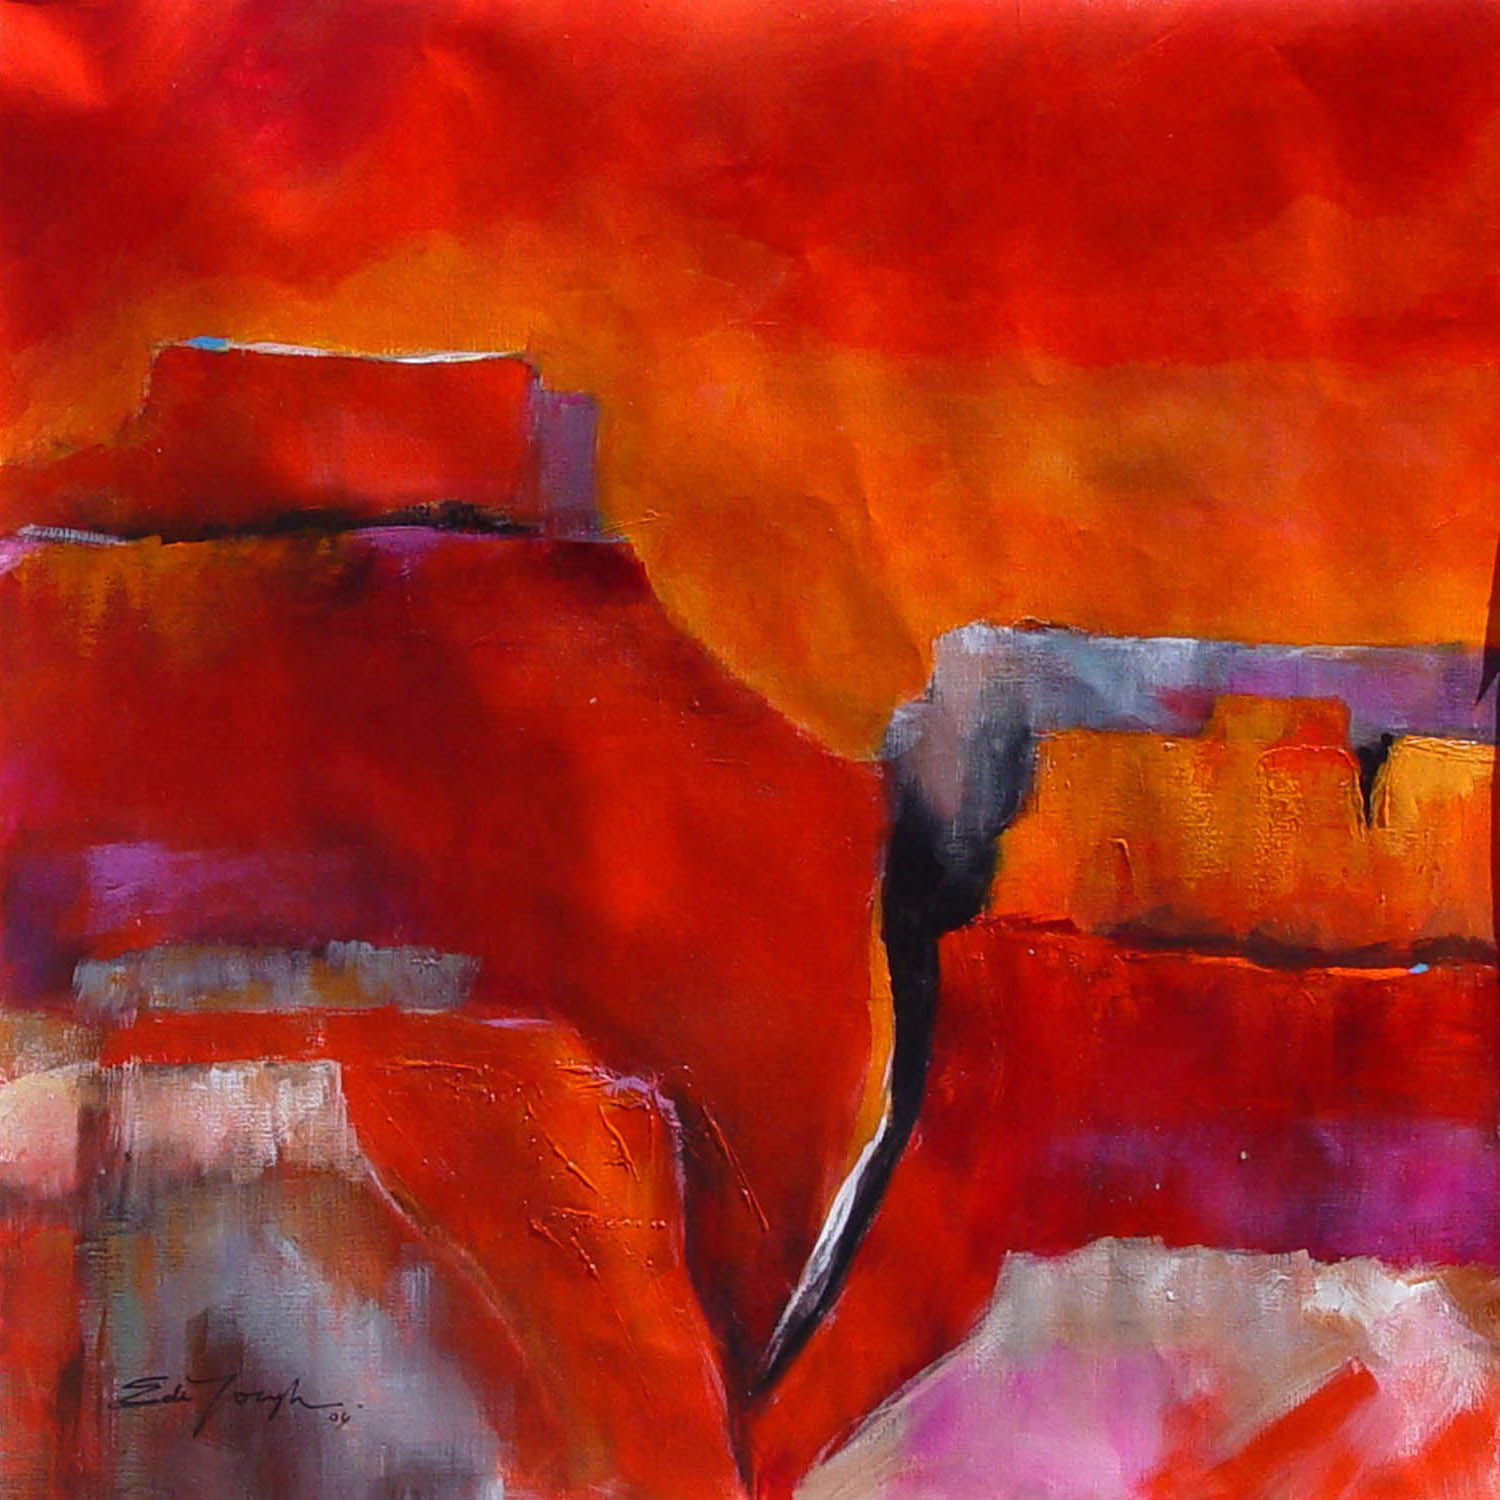 ellen dejongh - Vibrant colors, strong textures and surprising details couple with a strength of expression to create a body of work that represents a strong and confident presence in the world of fine art.